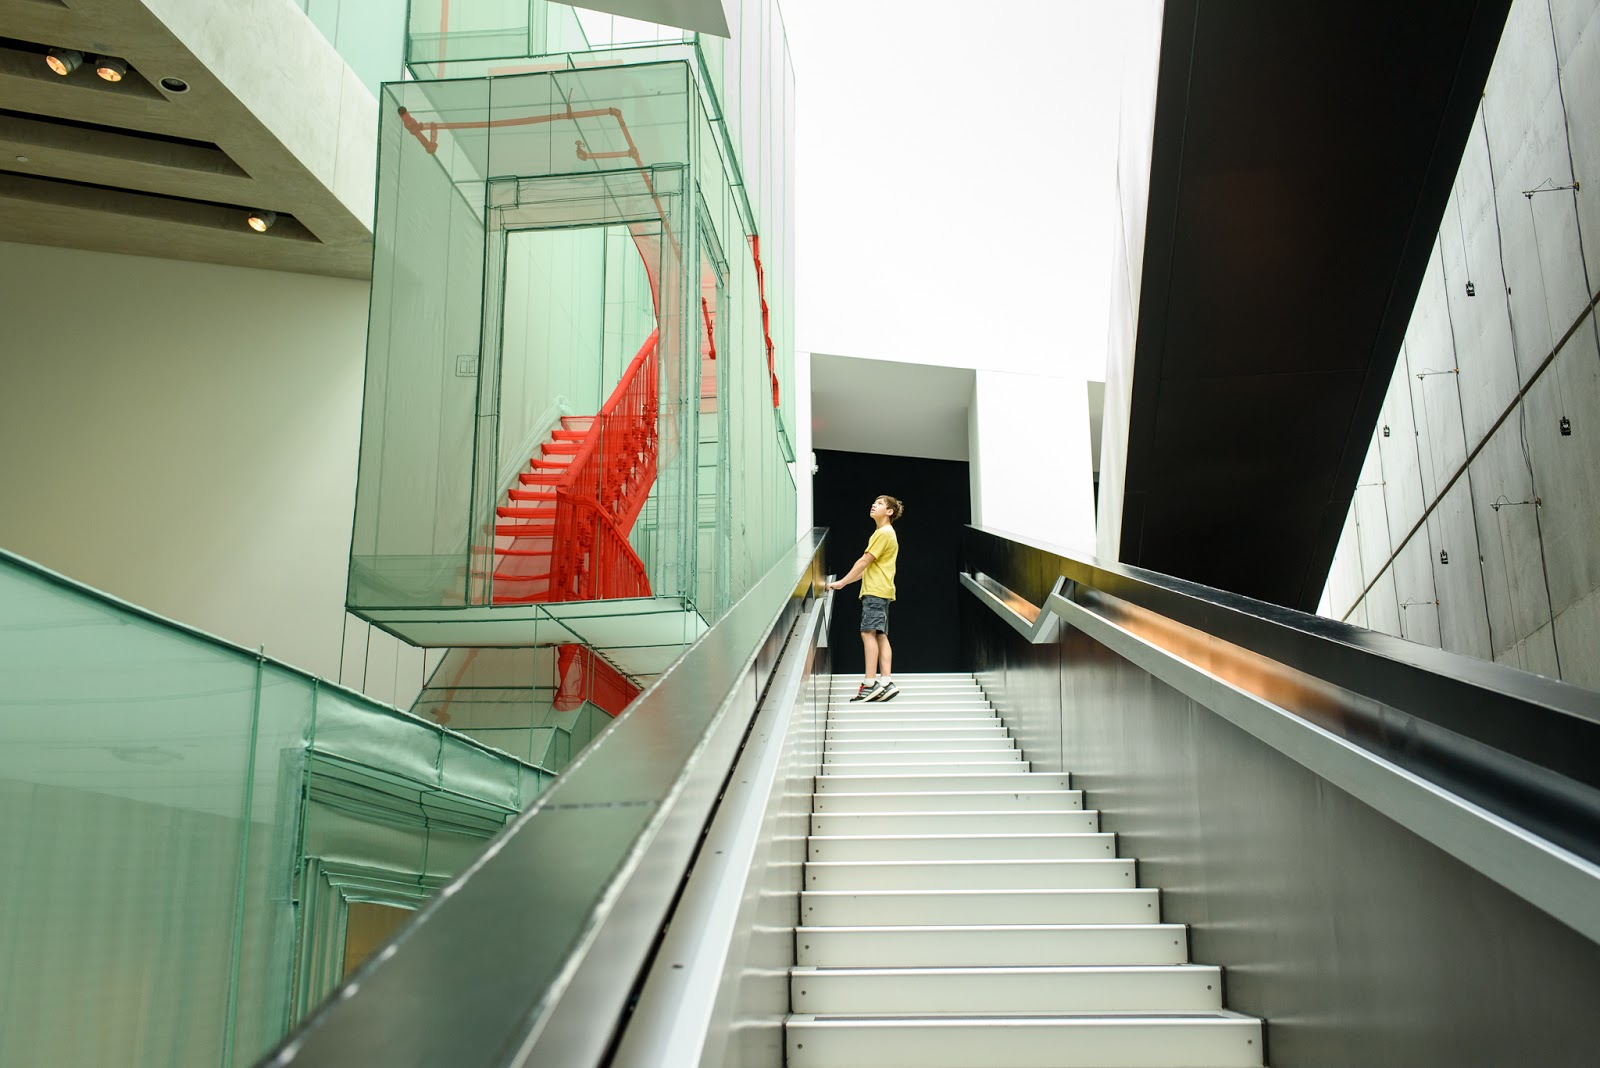 Looking at the fabric staircase from the steps at CAC exhibit by Do Ho Suh (photo by Diana Sherblom)